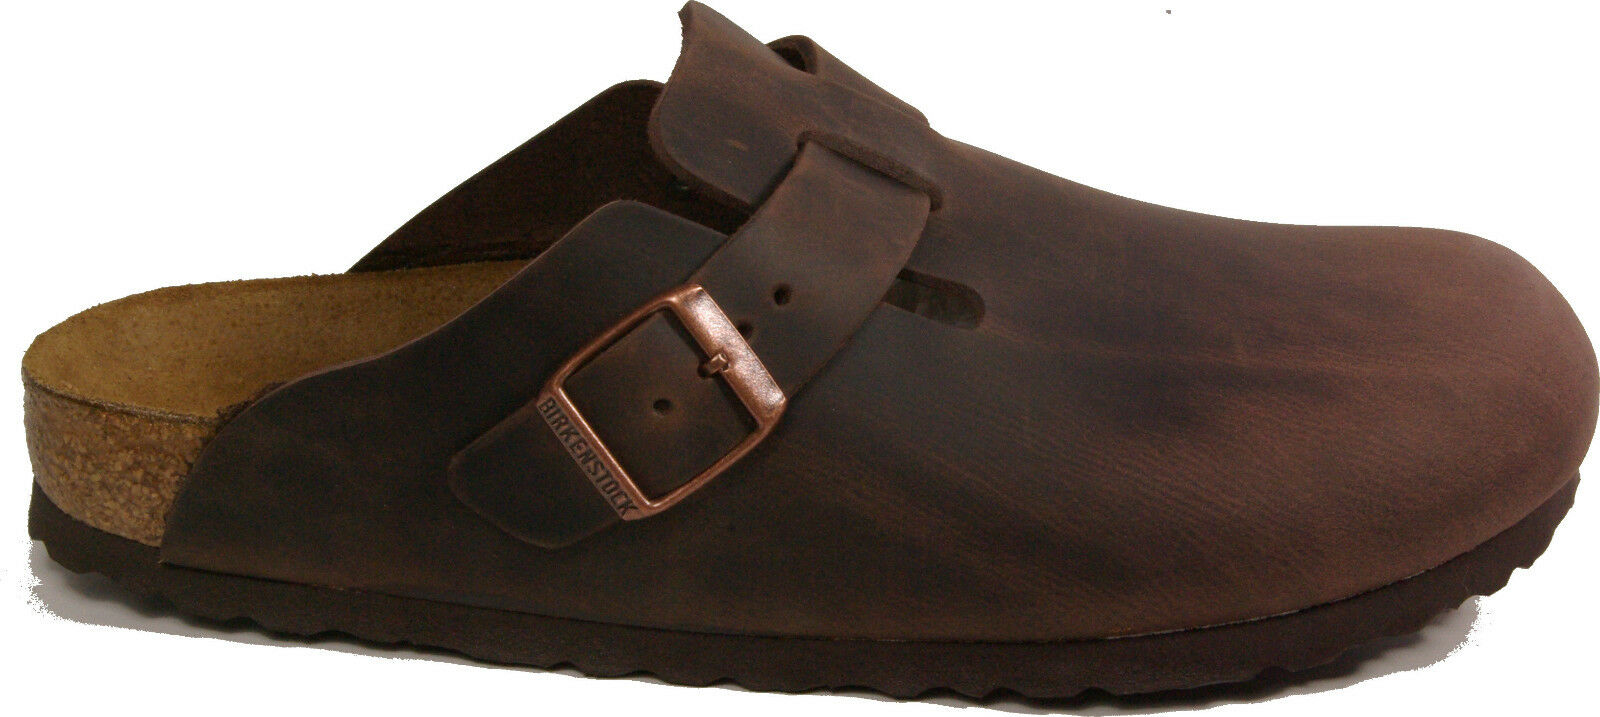 Men/Women BIRKENSTOCK 0860131 BOSTON HABANNA Brown leather store REGULAR footbed NEW flagship store leather New style Excellent stretching RN515 c228a6